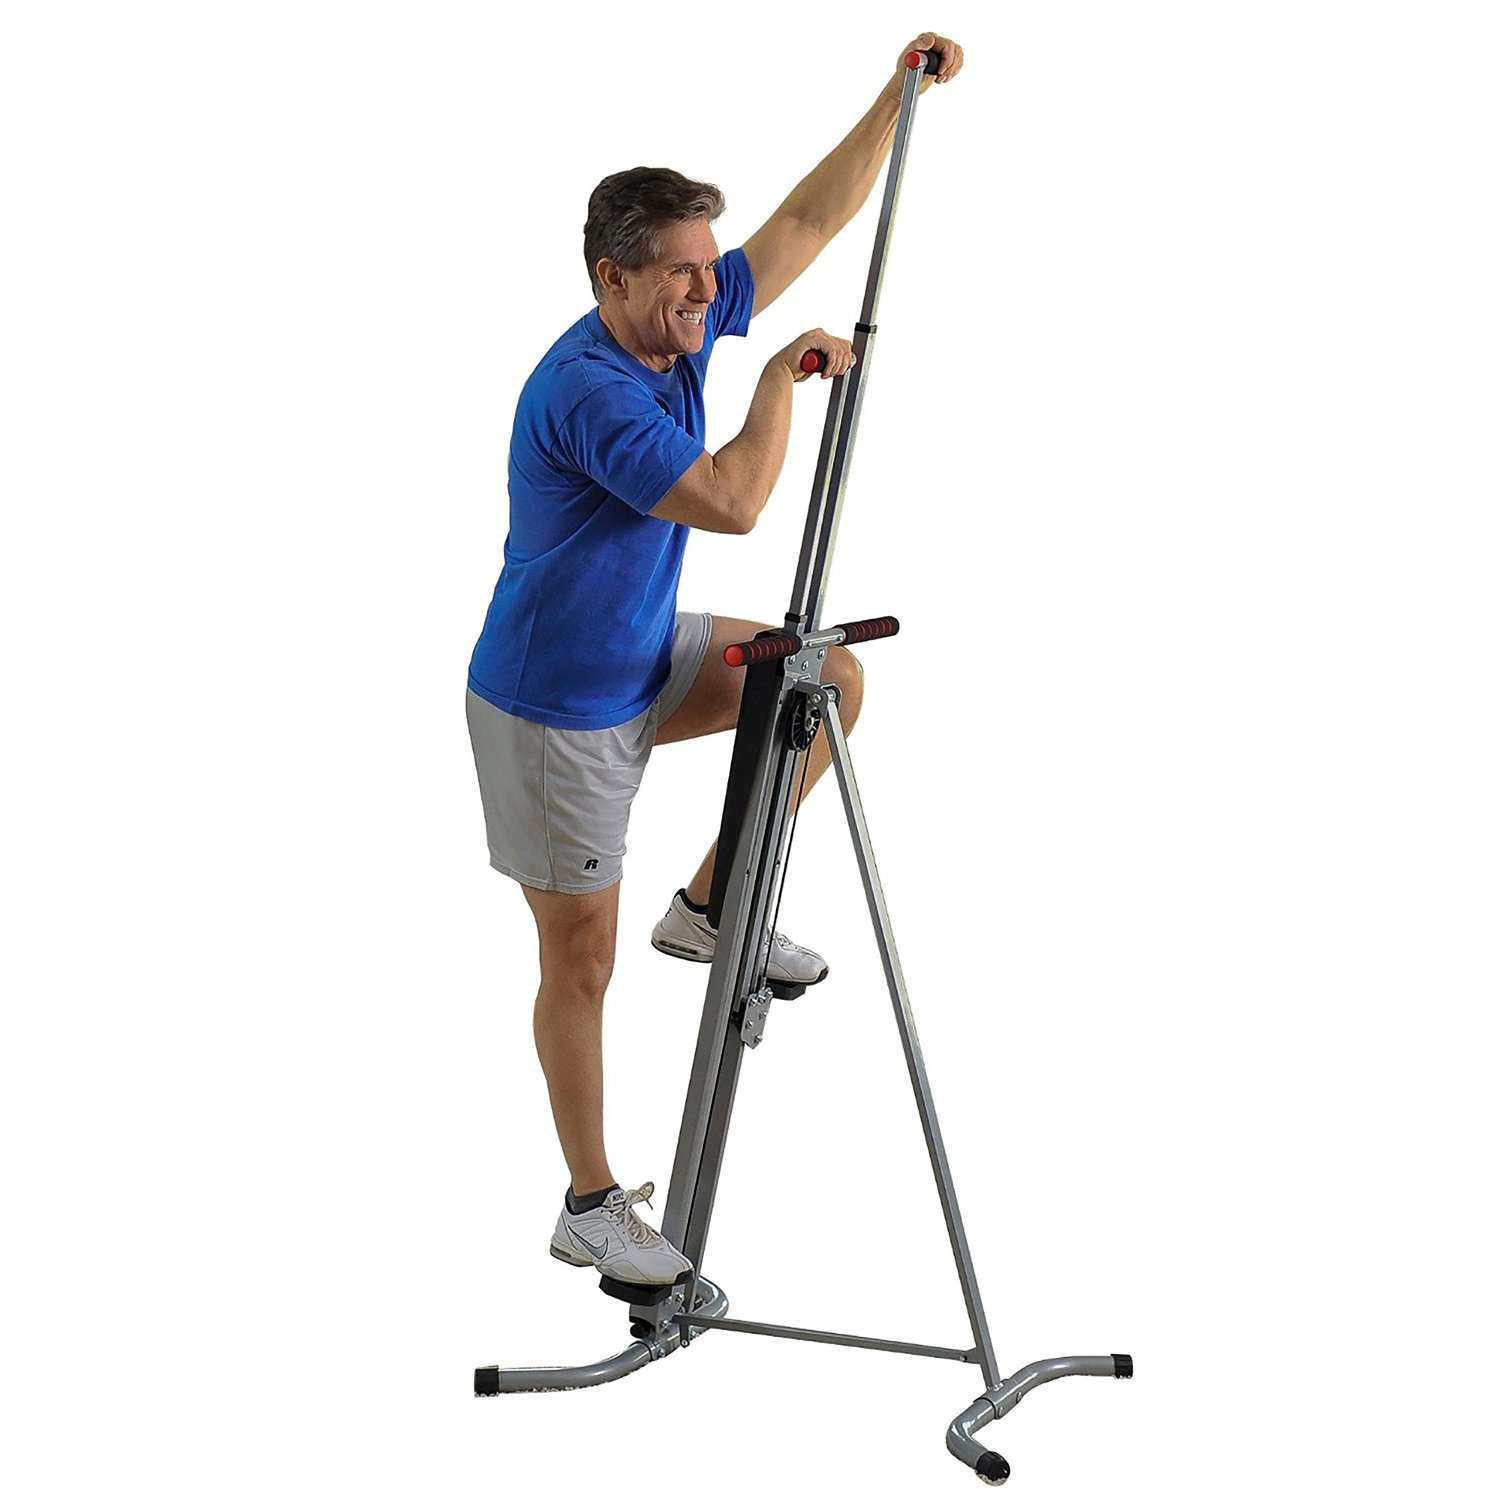 MaxiClimber Vertical Climber Review